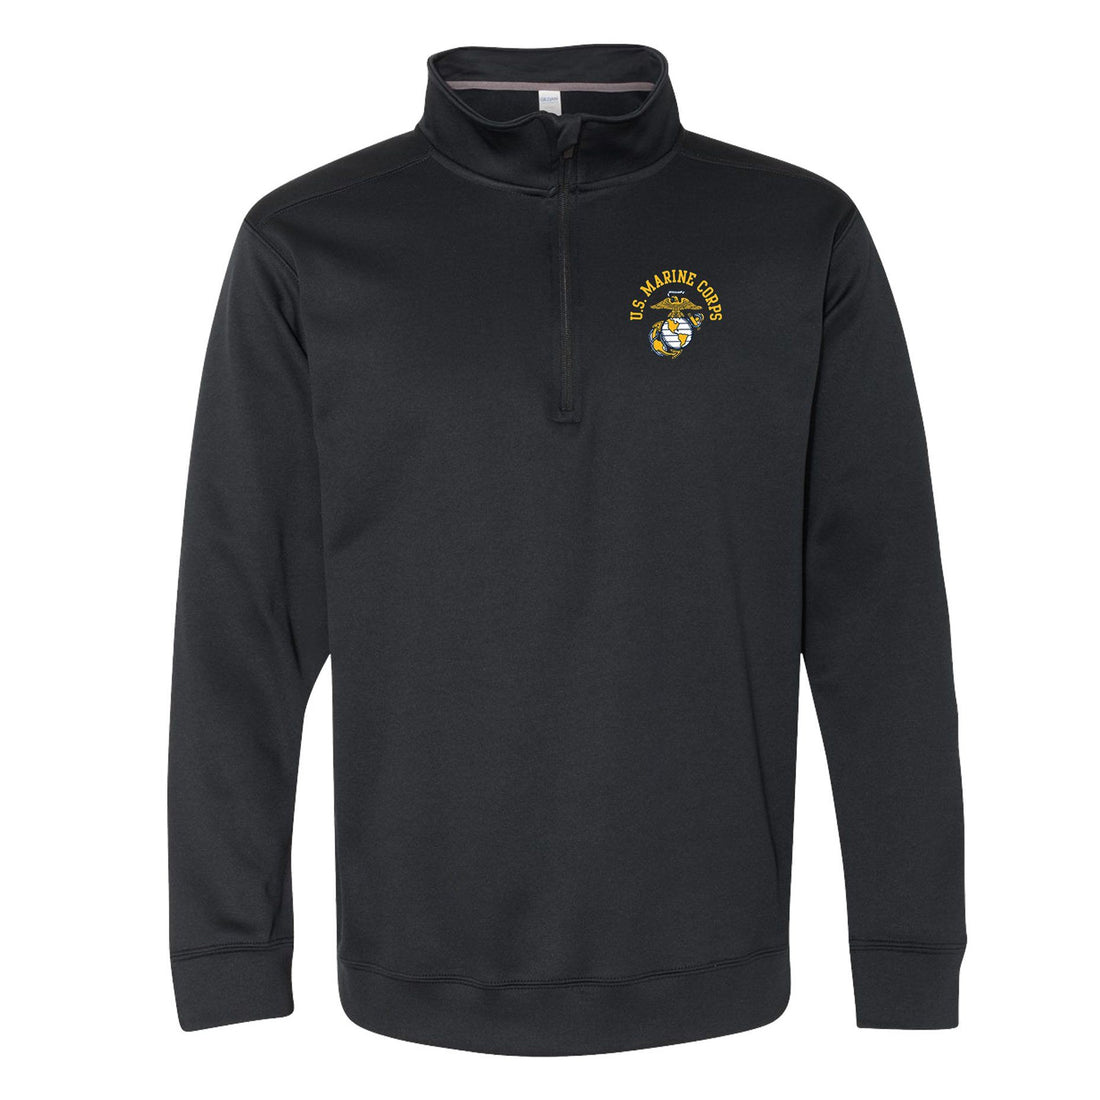 COMBAT CHARGED DRI-FIT PERFORMANCE POLY US EGA 1/4 ZIP